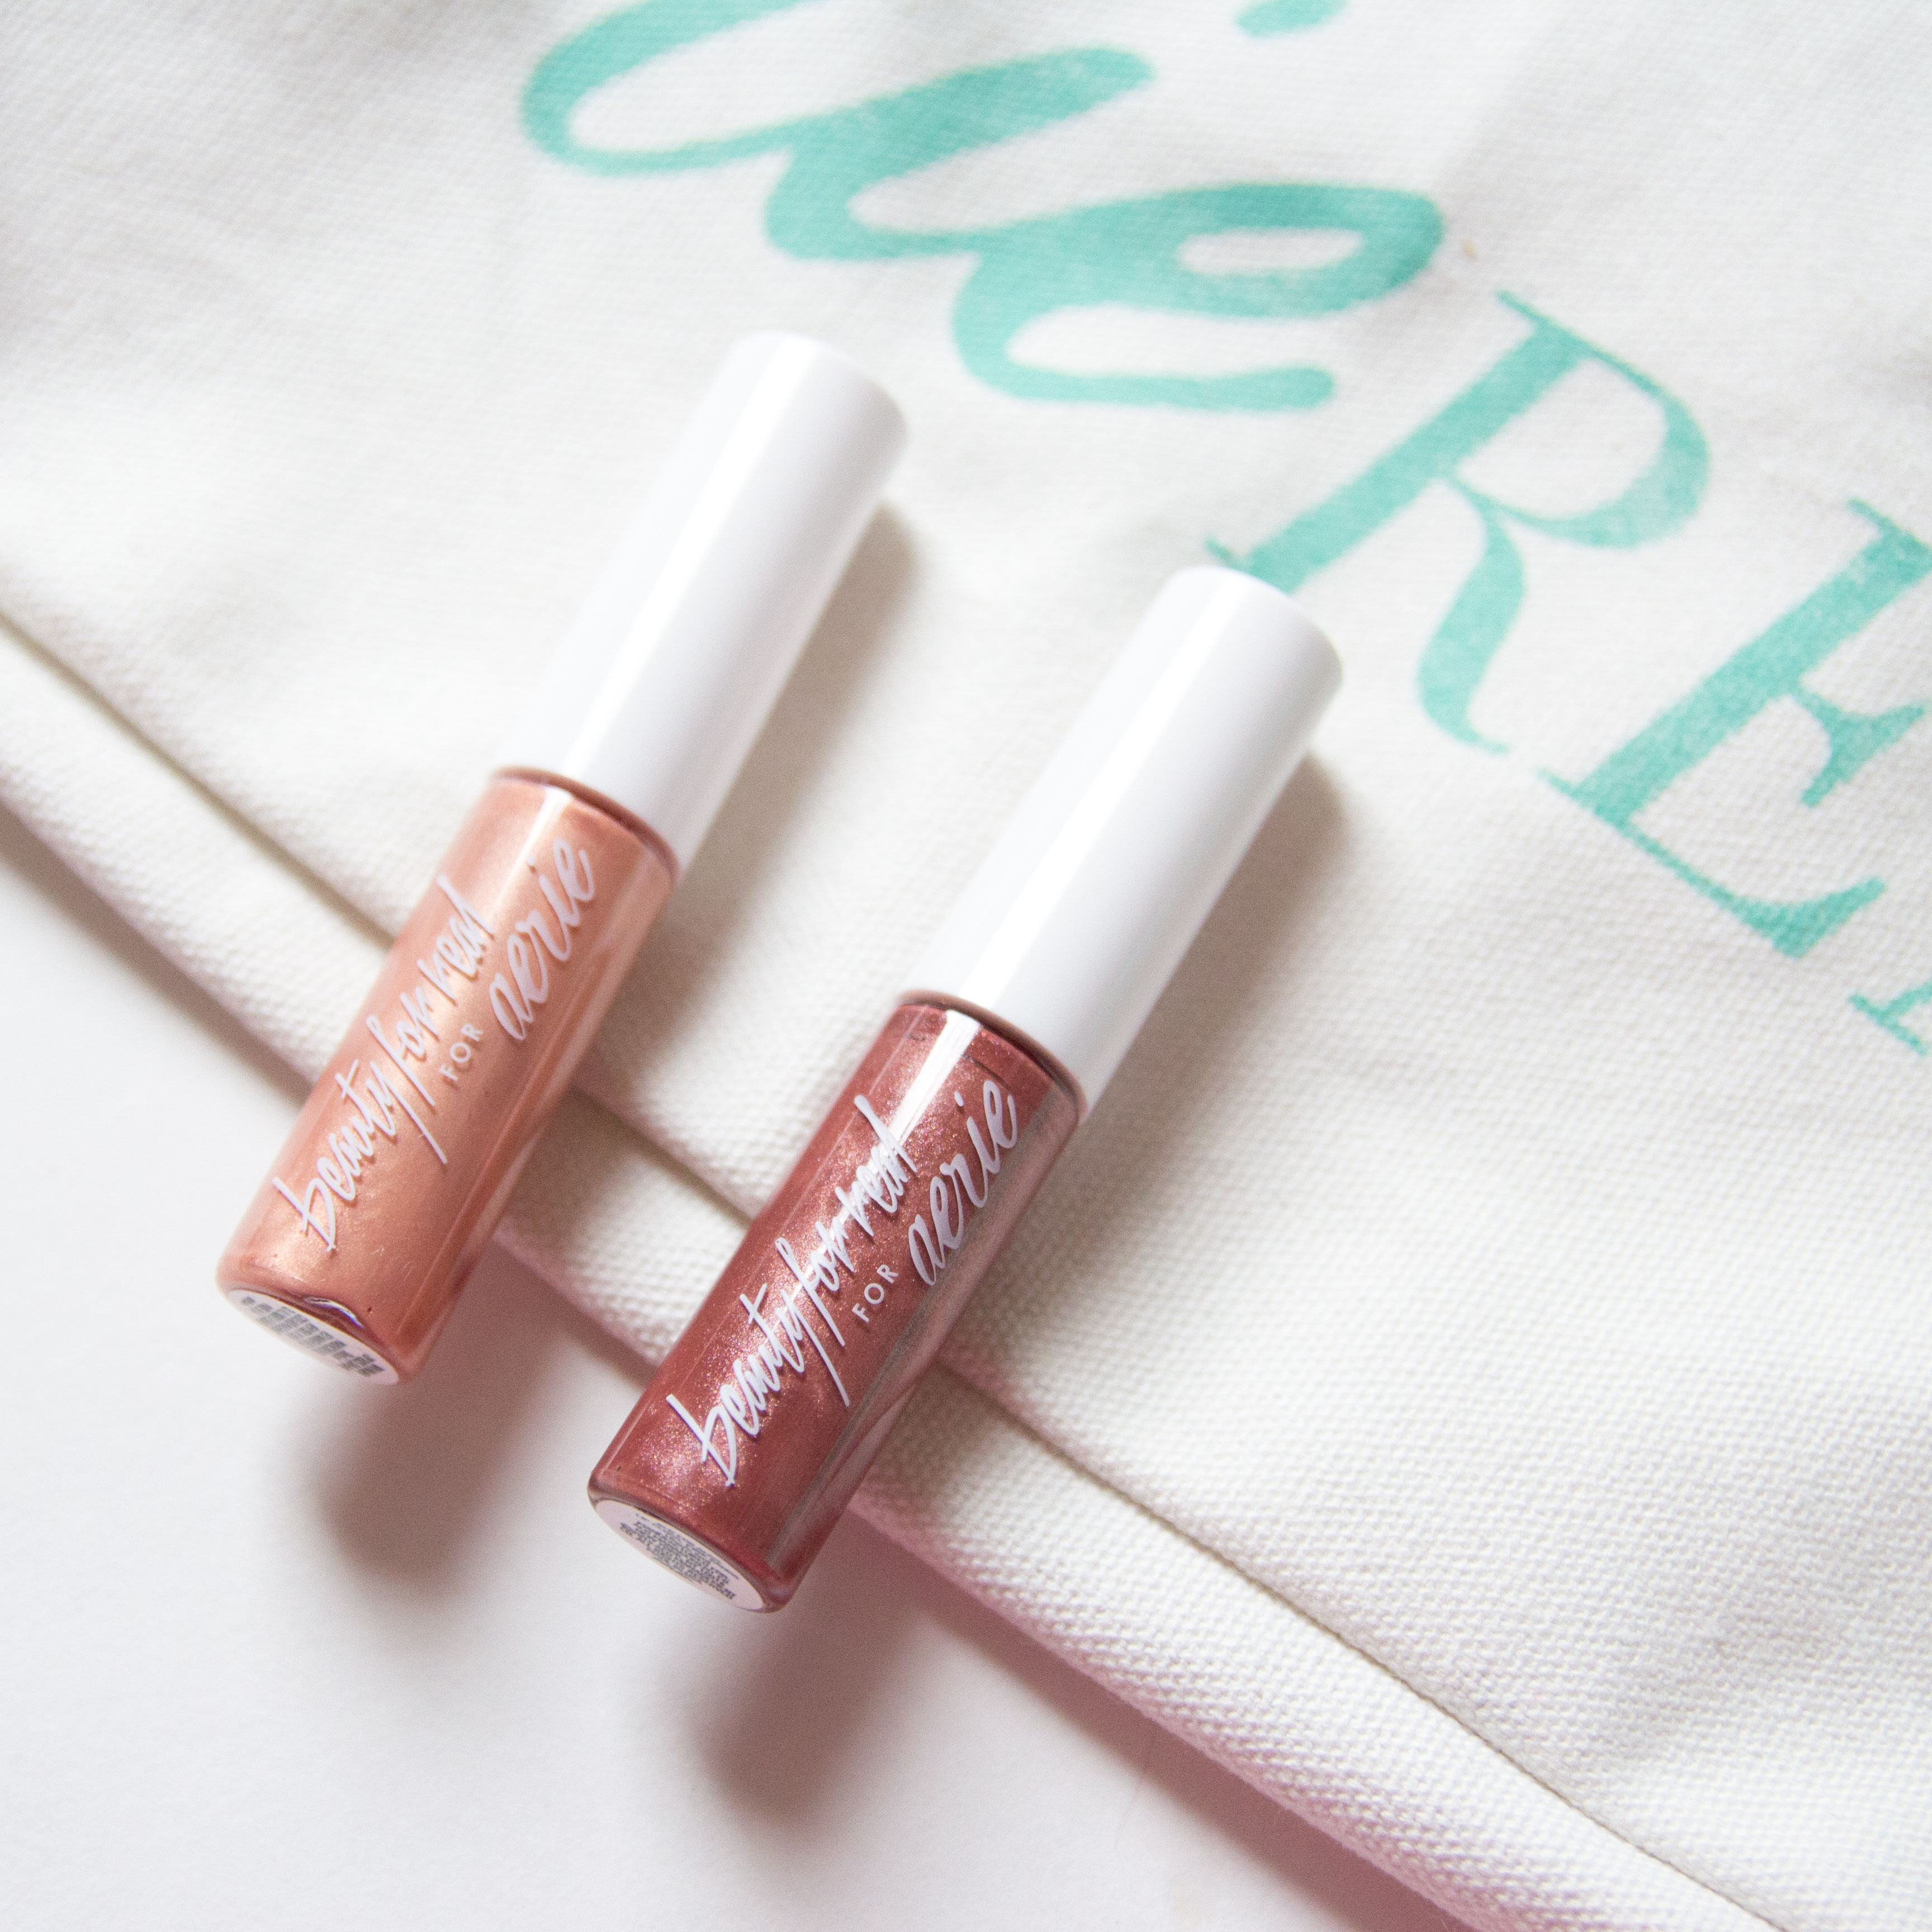 Aerie Beauty For Real Pink Sands, Sun-Shine Lip Gloss Swatches Review